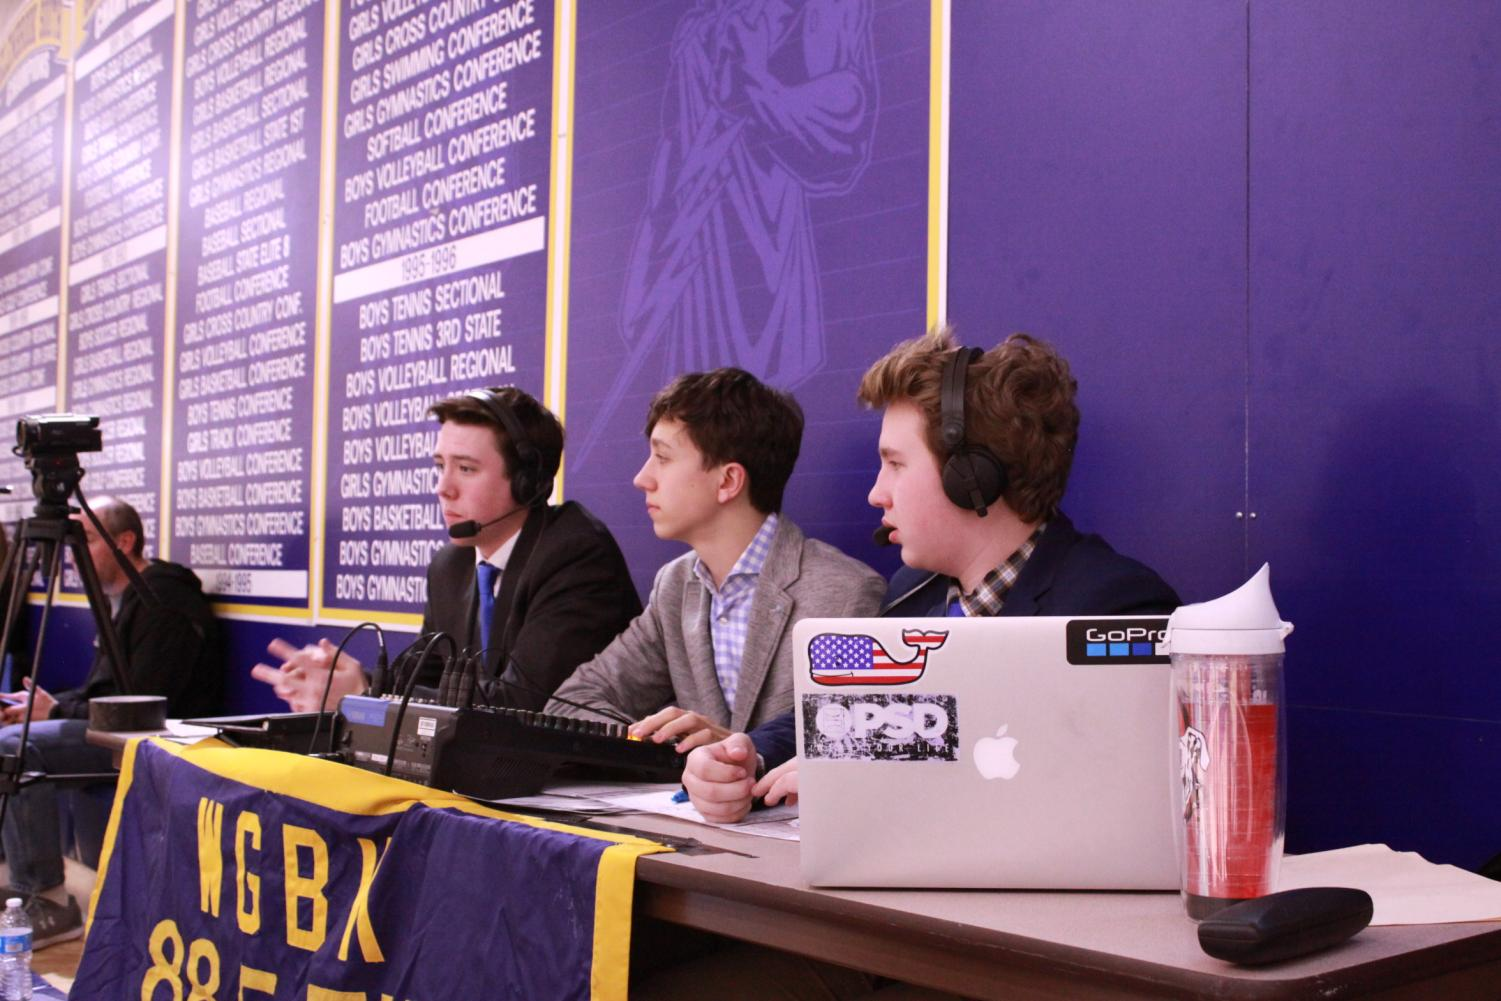 On air action: Bruce Klosa, Jonas Evans and Bryce Gaubert, junior radio commentators, announced the boys' basketball game on Dec. 13. As the game continued, they described the game play-by-play and gave analysis. Photo by Nicole Surcel